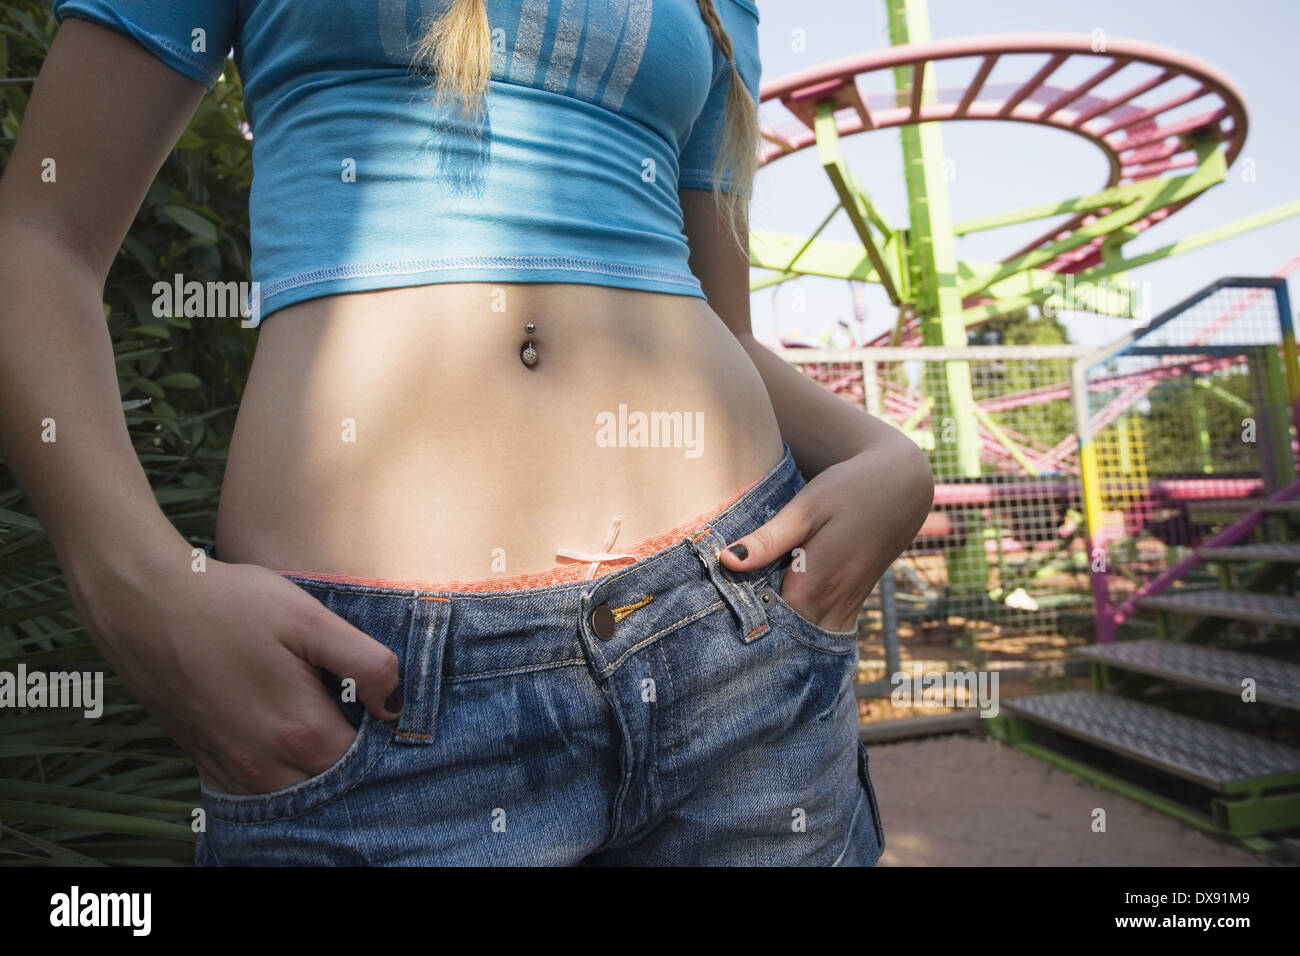 Teen navel stomach picture confirm. join